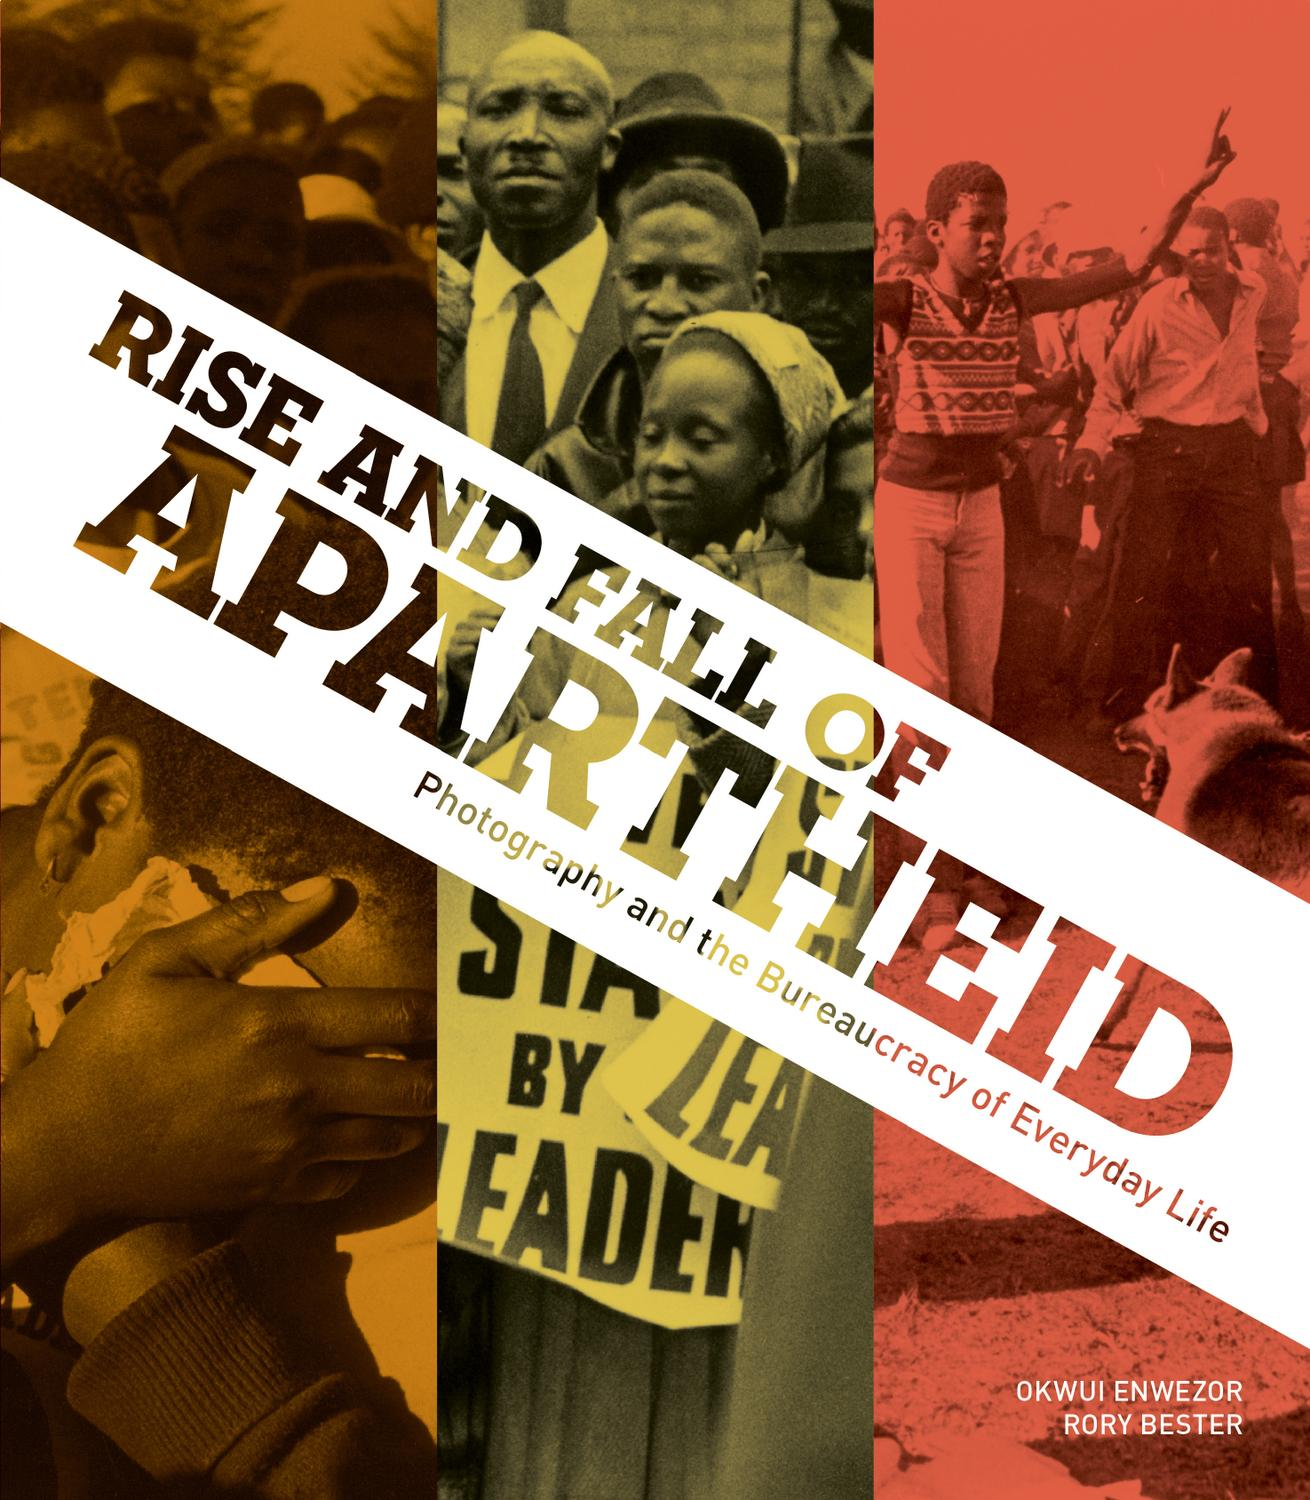 apartheid essay by haus der kunst issuu